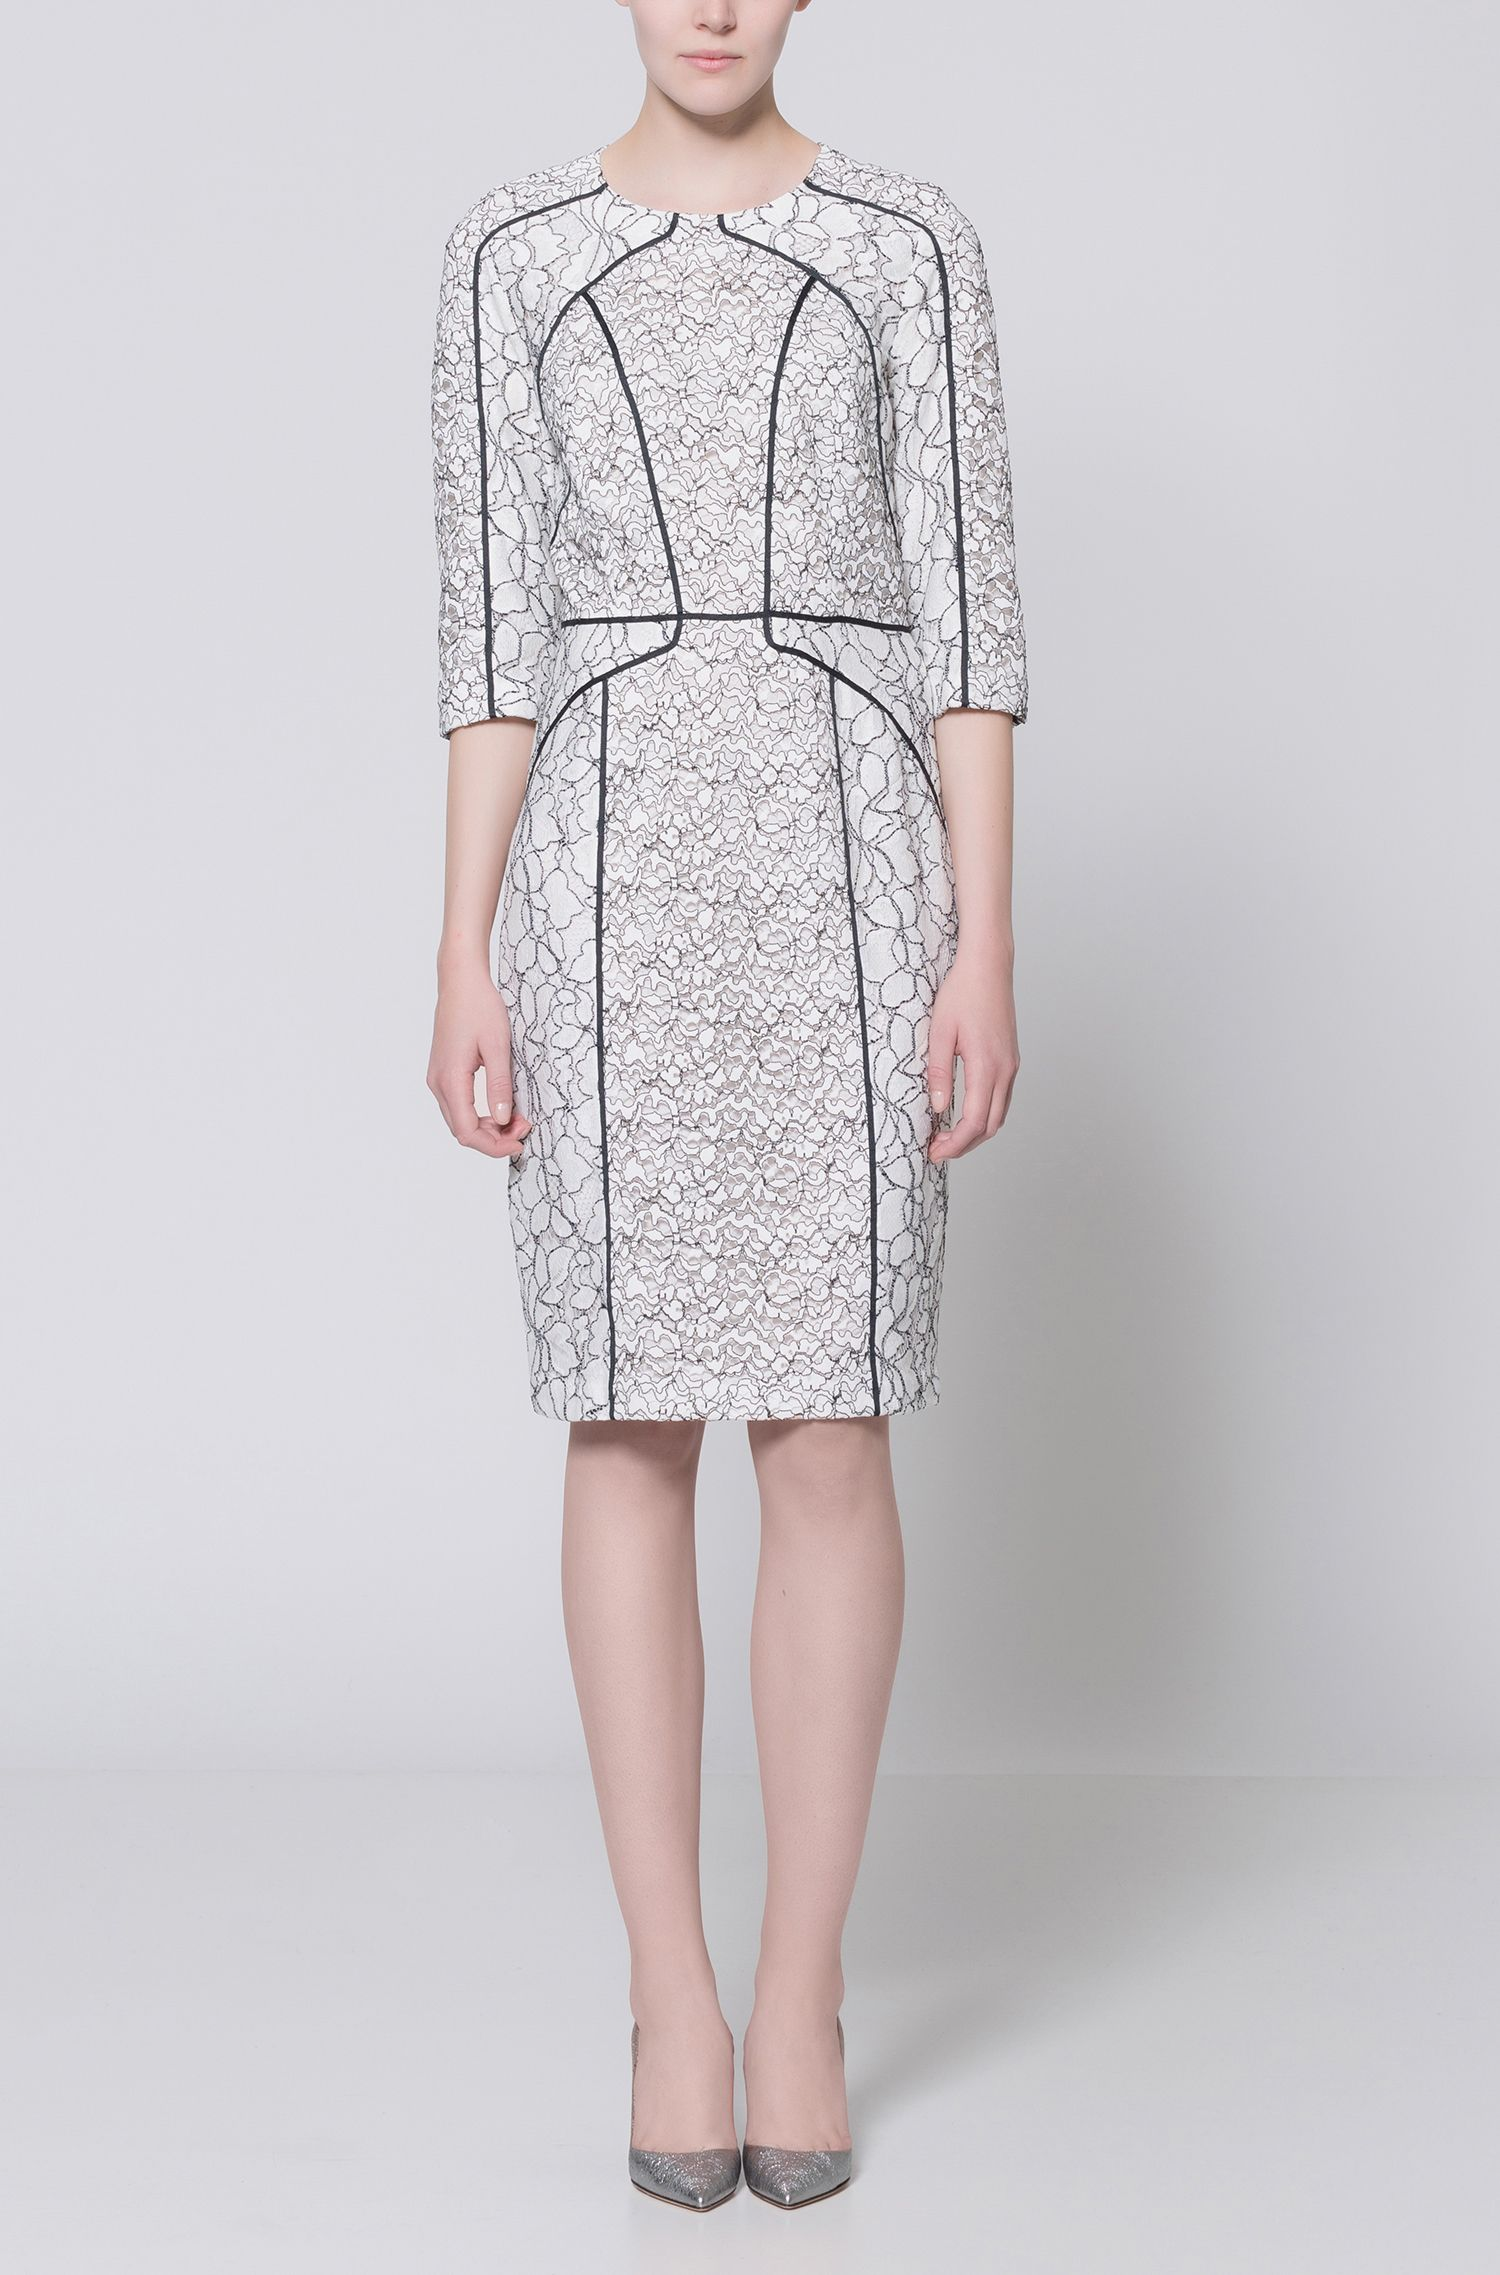 Long-sleeved dress in patched lace with contrast piping HUGO BOSS